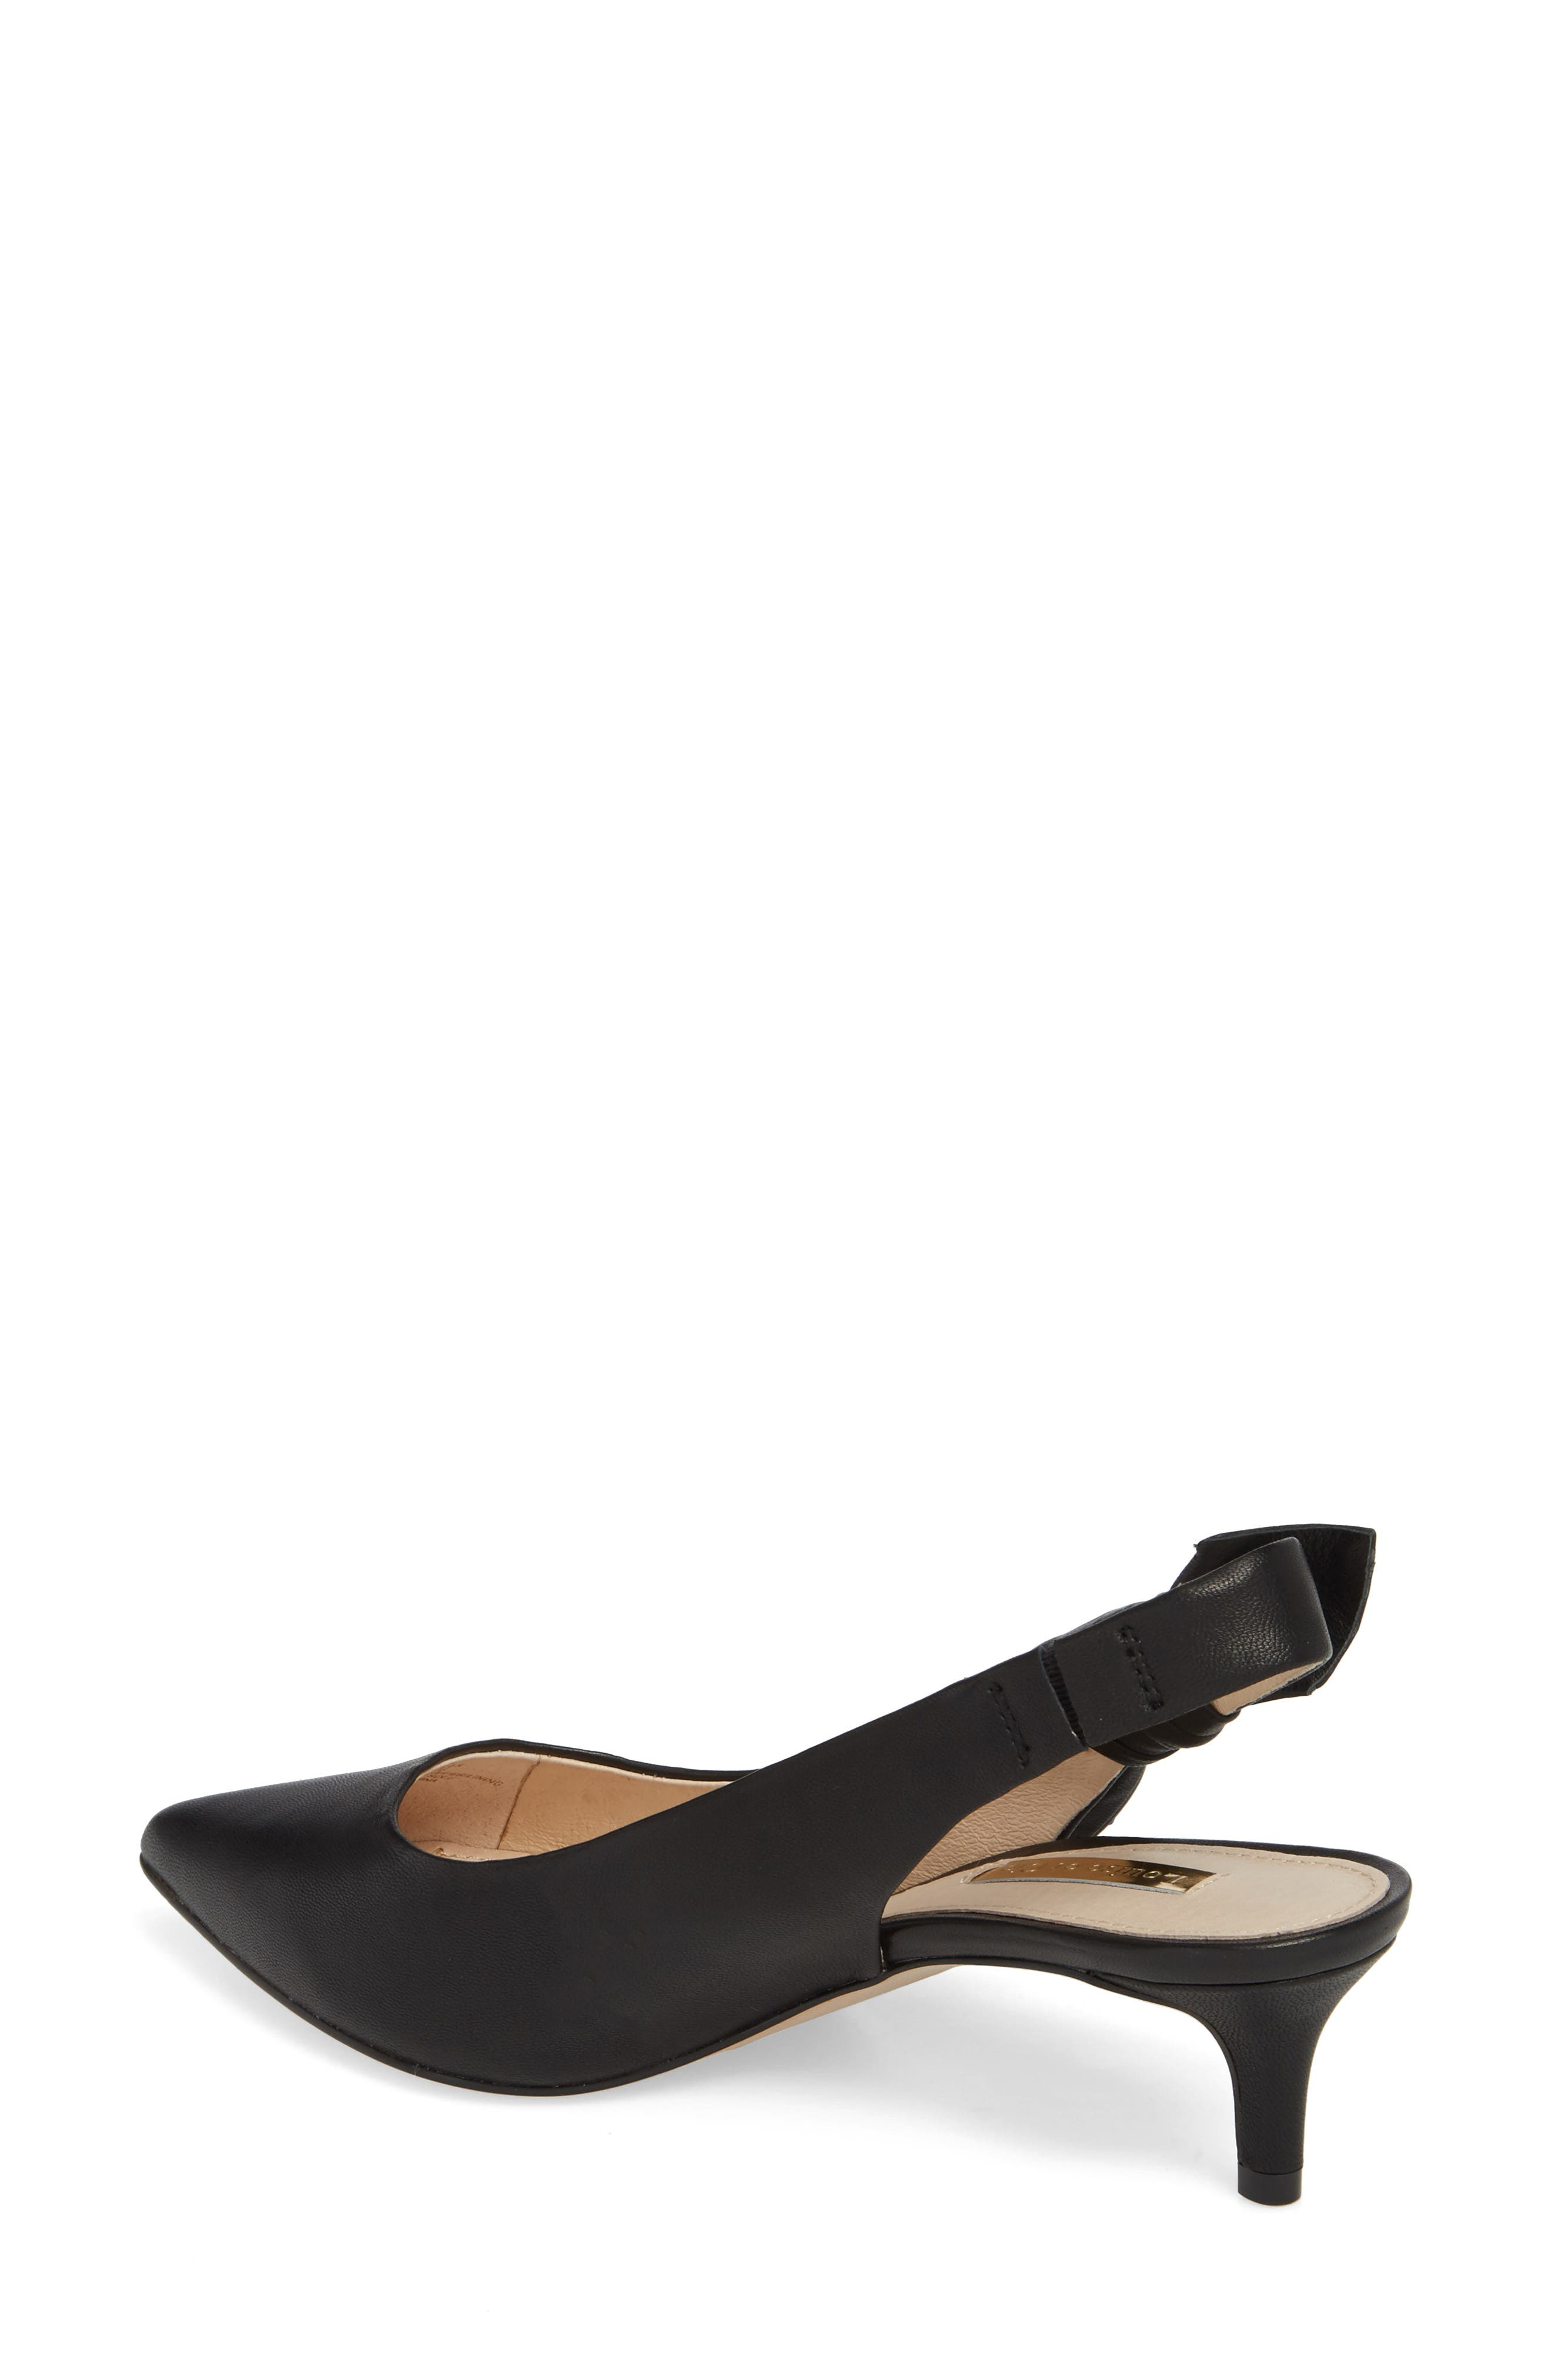 Jasilen Slingback Pump,                             Alternate thumbnail 2, color,                             BLACK LEATHER